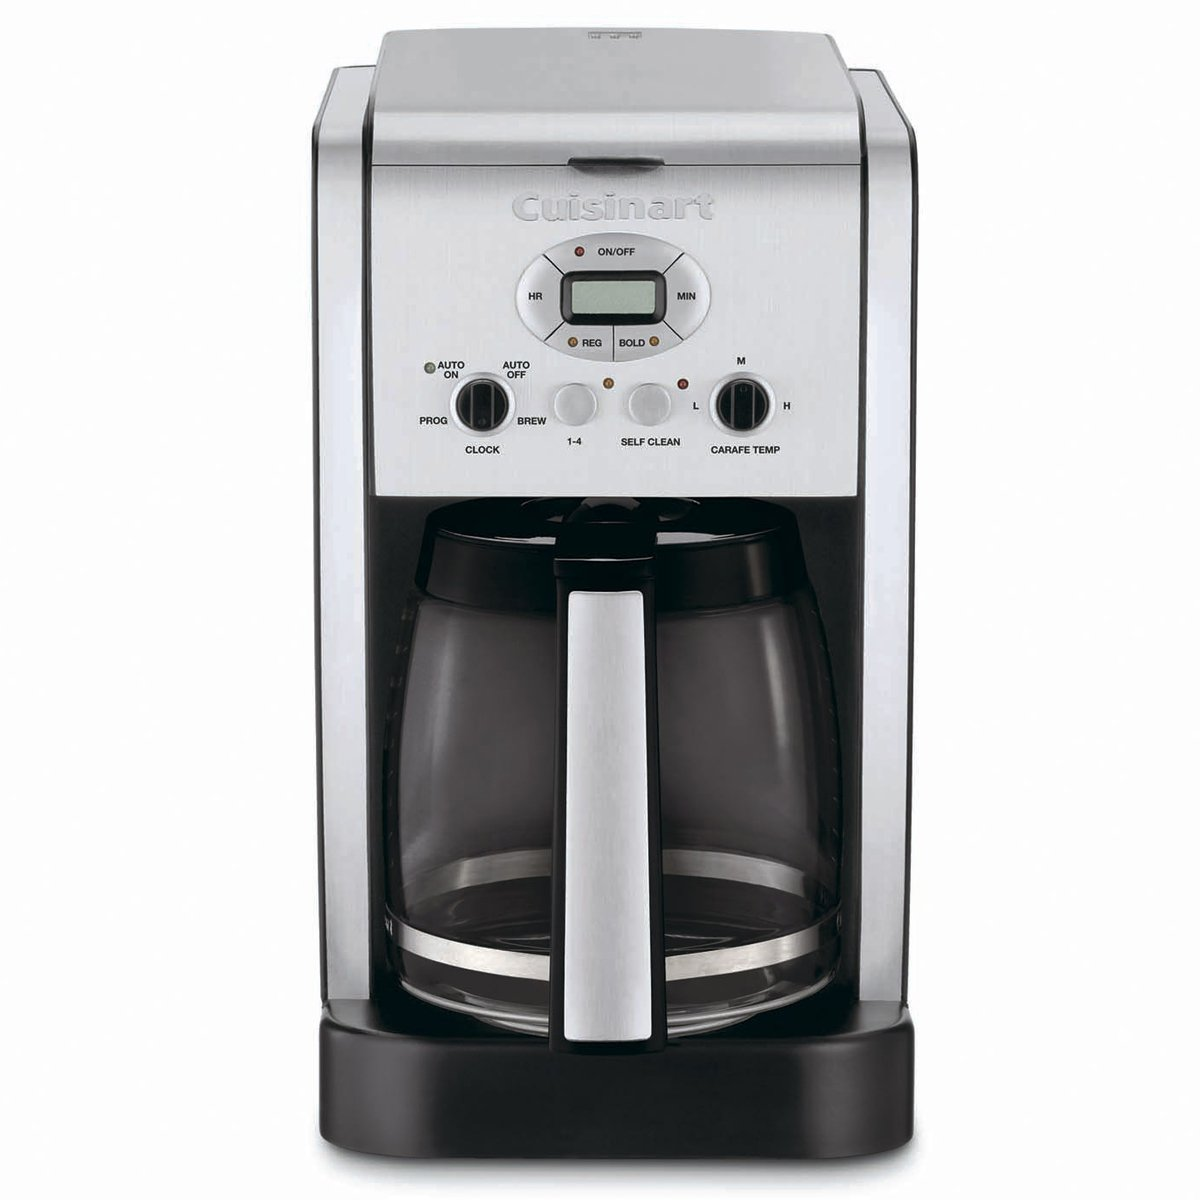 Amazon.com: Cuisinart 14 Cup Programmable Coffee Maker DCC2600C: Drip  Coffeemakers: Kitchen & Dining